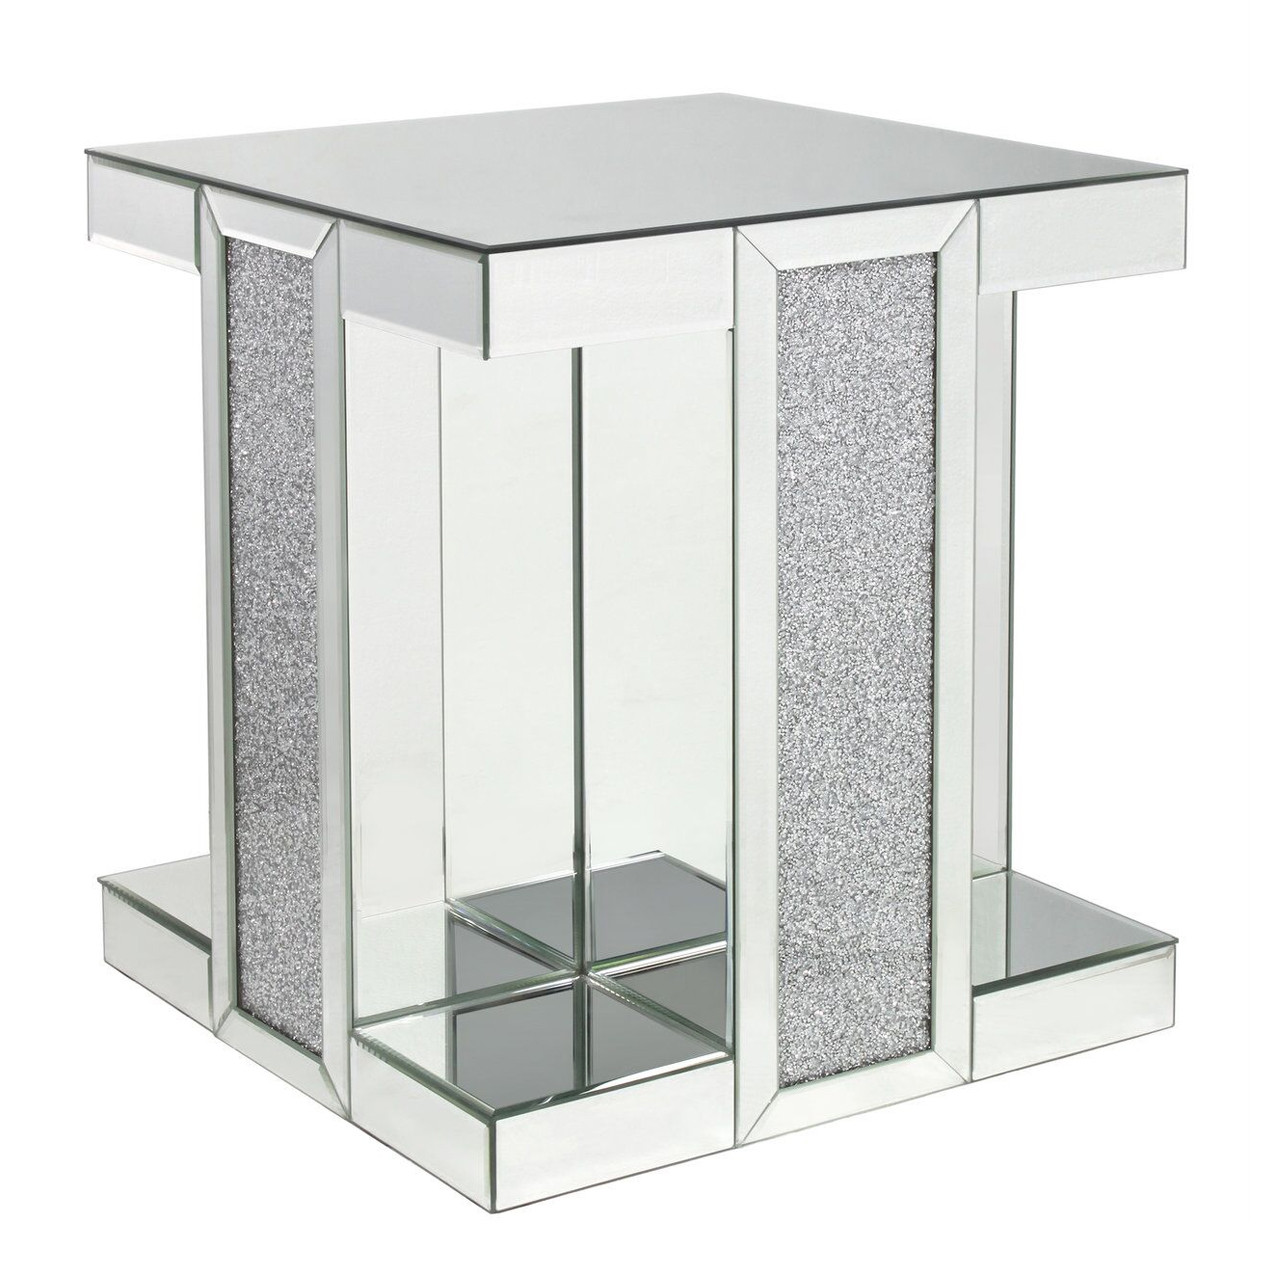 tables best pedestal side table design for accentuate your living mirrored end target accent marble coffee and round oval top furniture direct chairside ikea grill tools berg